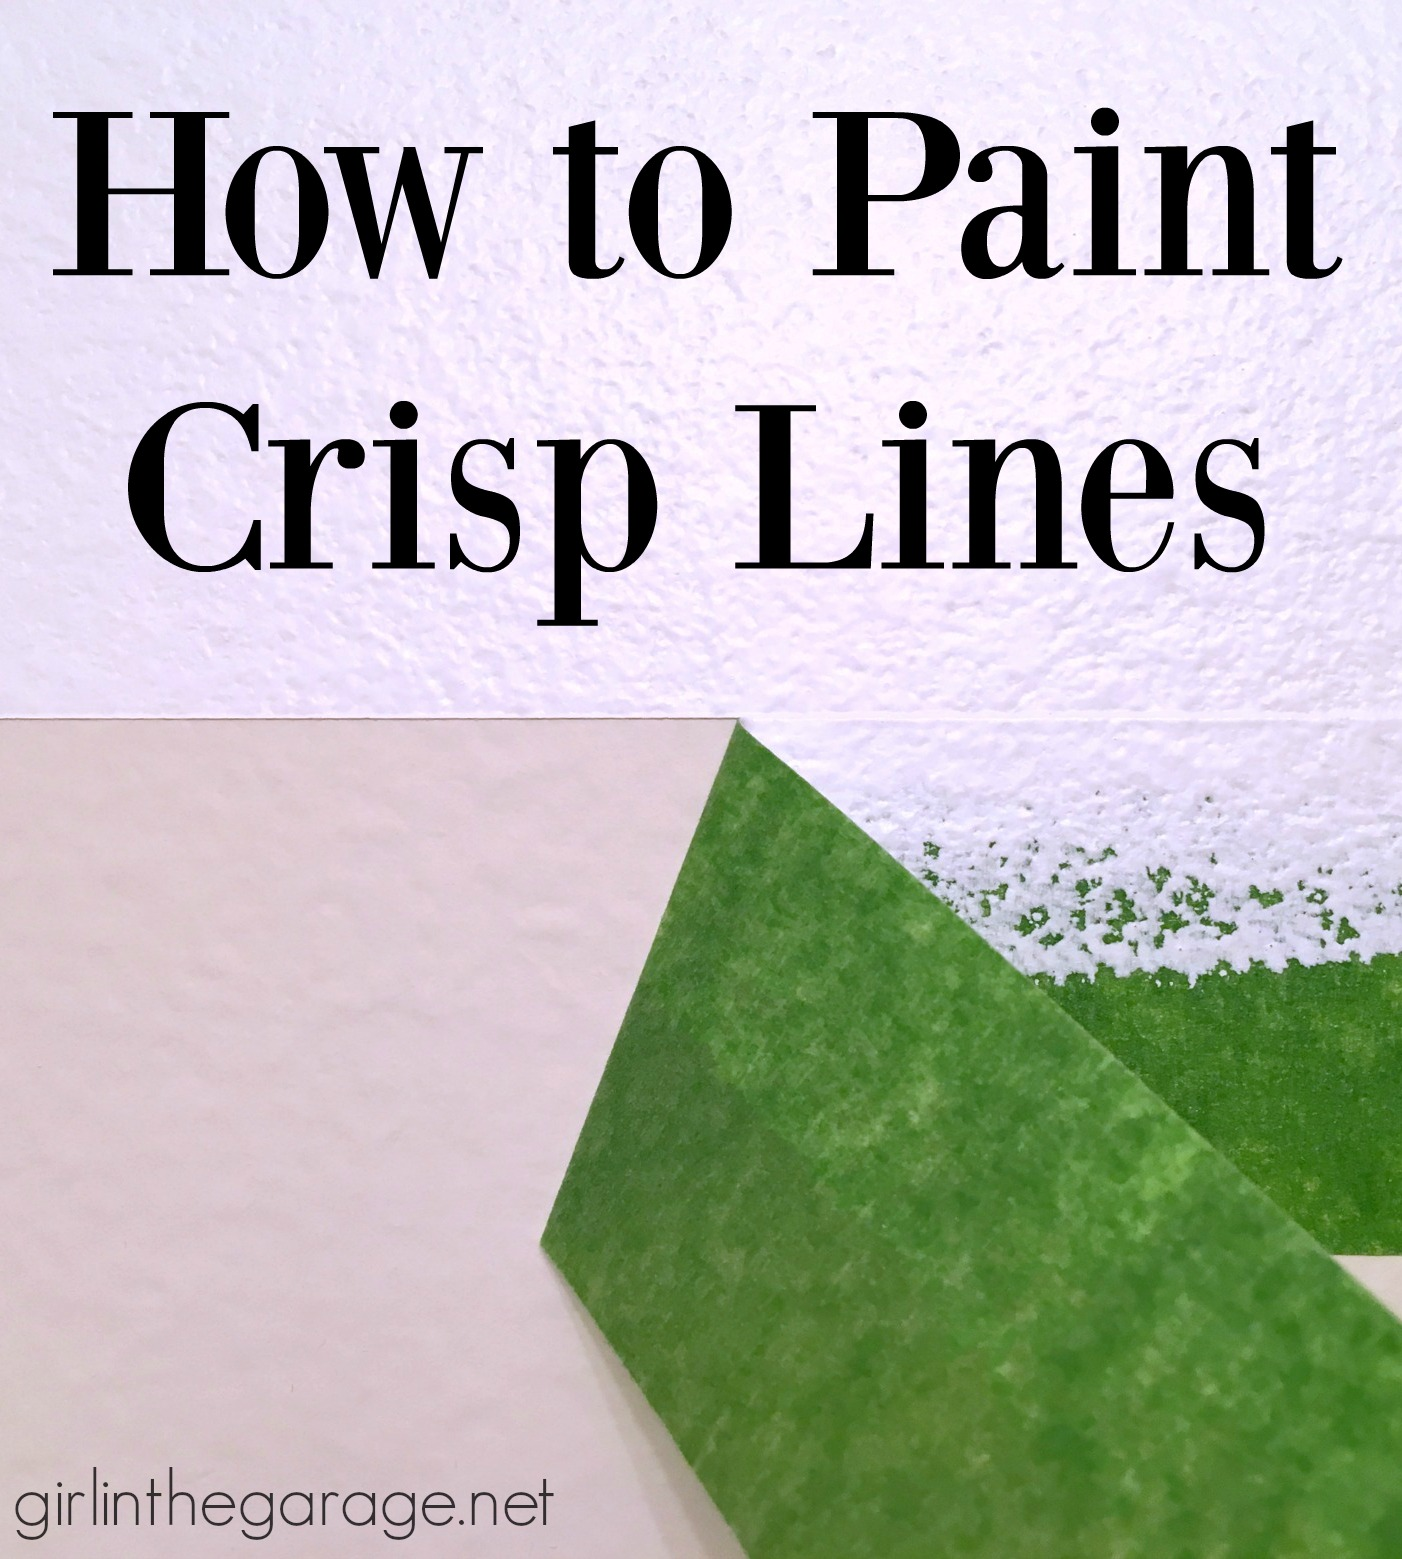 How to paint crisp lines - Boys' bathroom makeover by Girl in the Garage